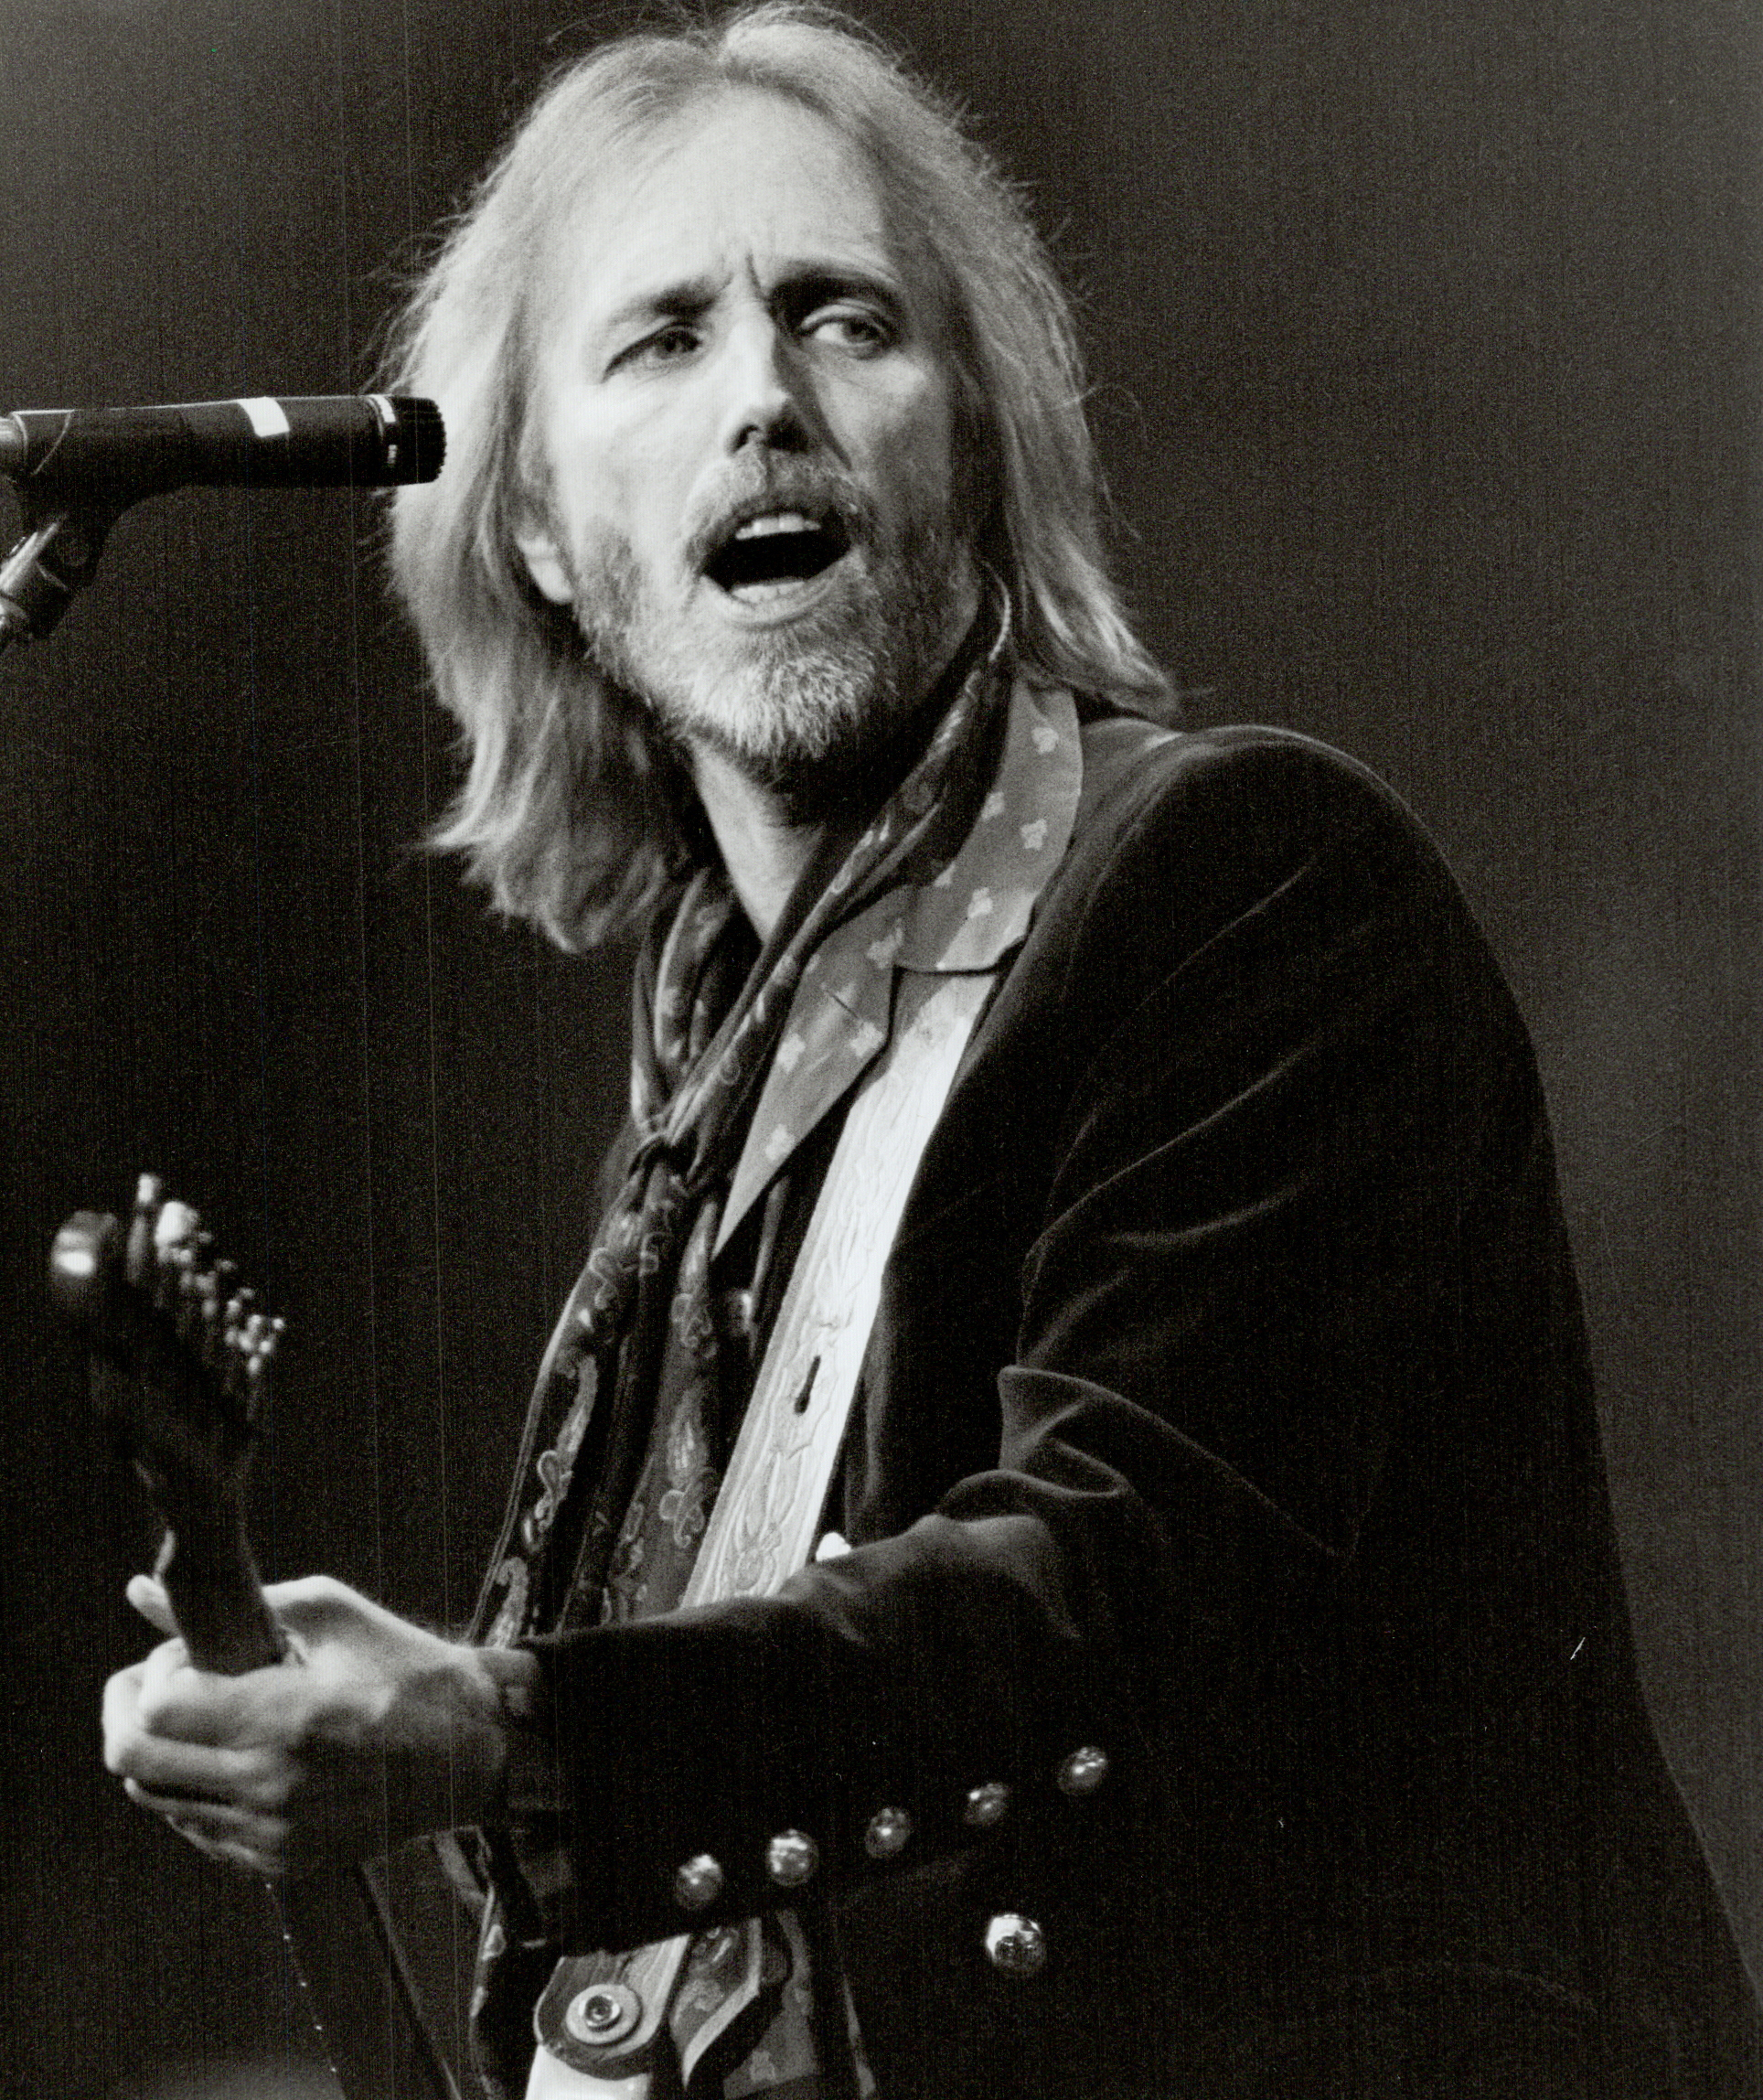 Tom Petty on the Road: This Is How It Feels – Rolling Stone